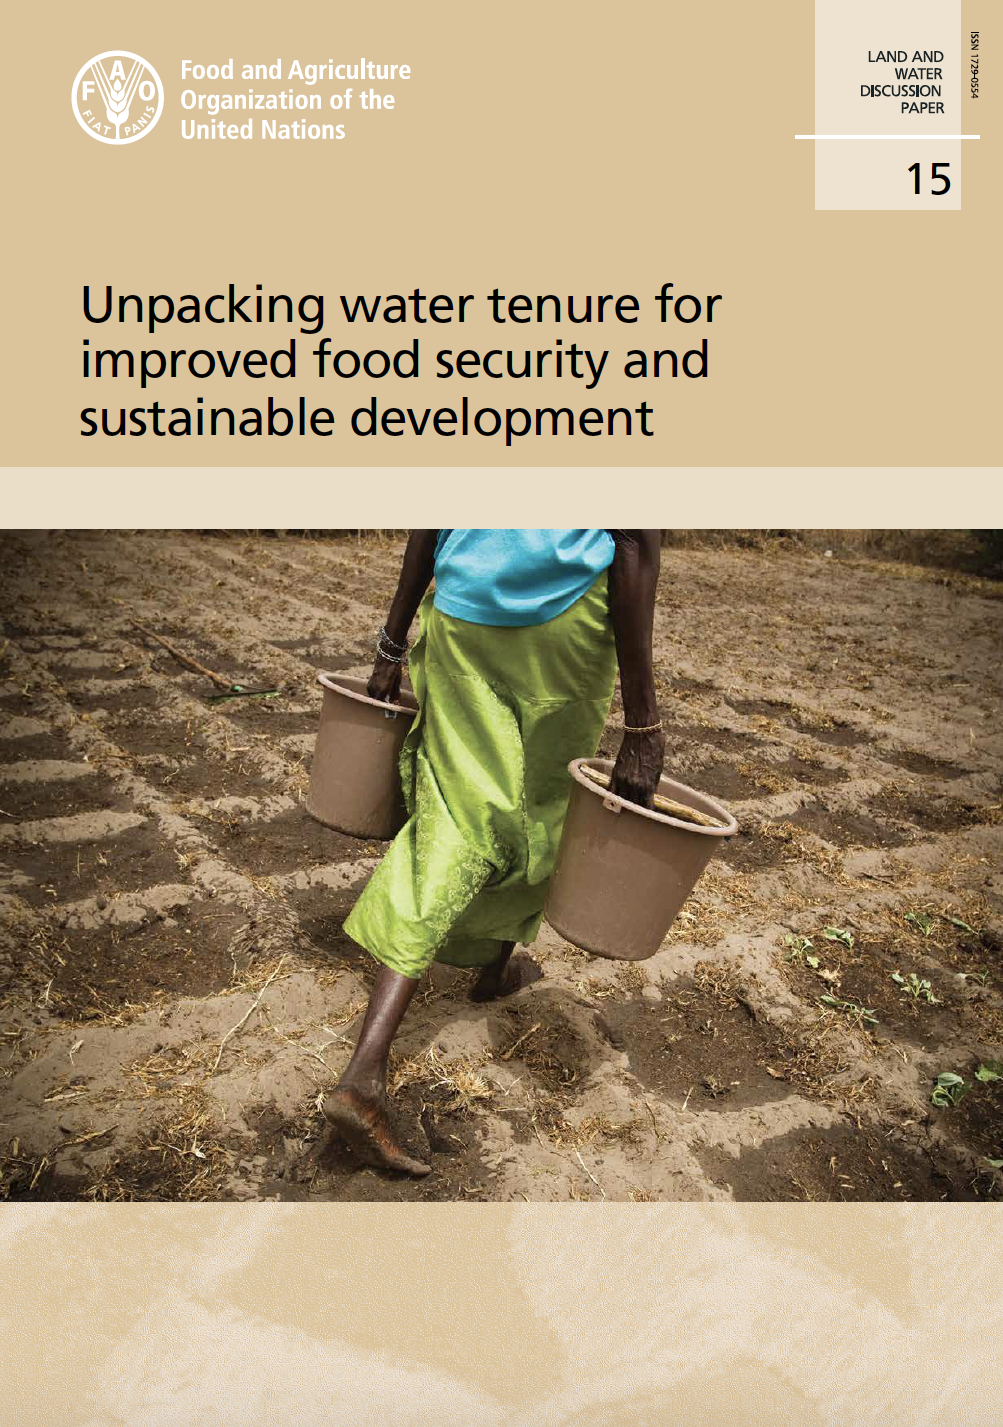 Unpacking water tenure for improved food security and sustainable development